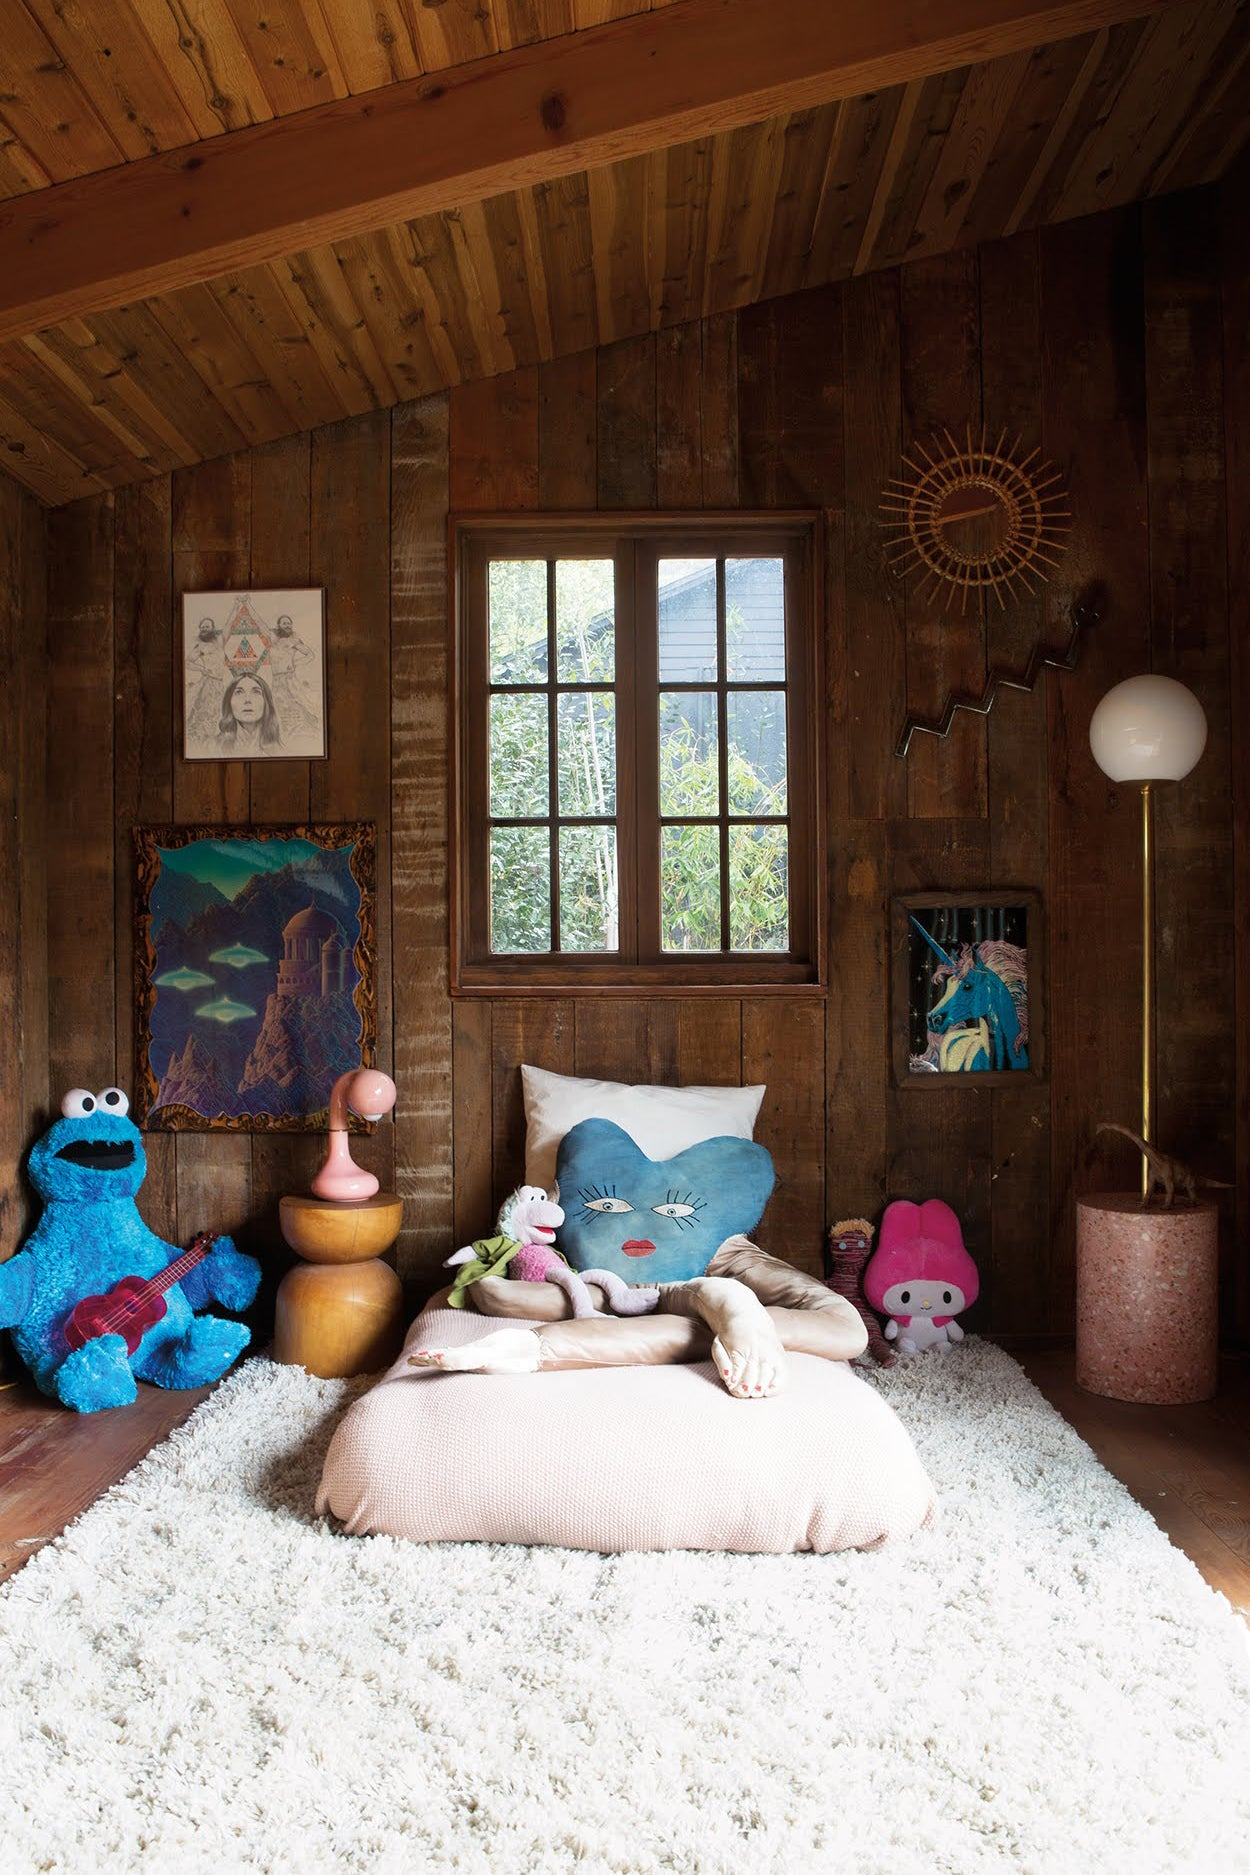 Kids room with wood walls